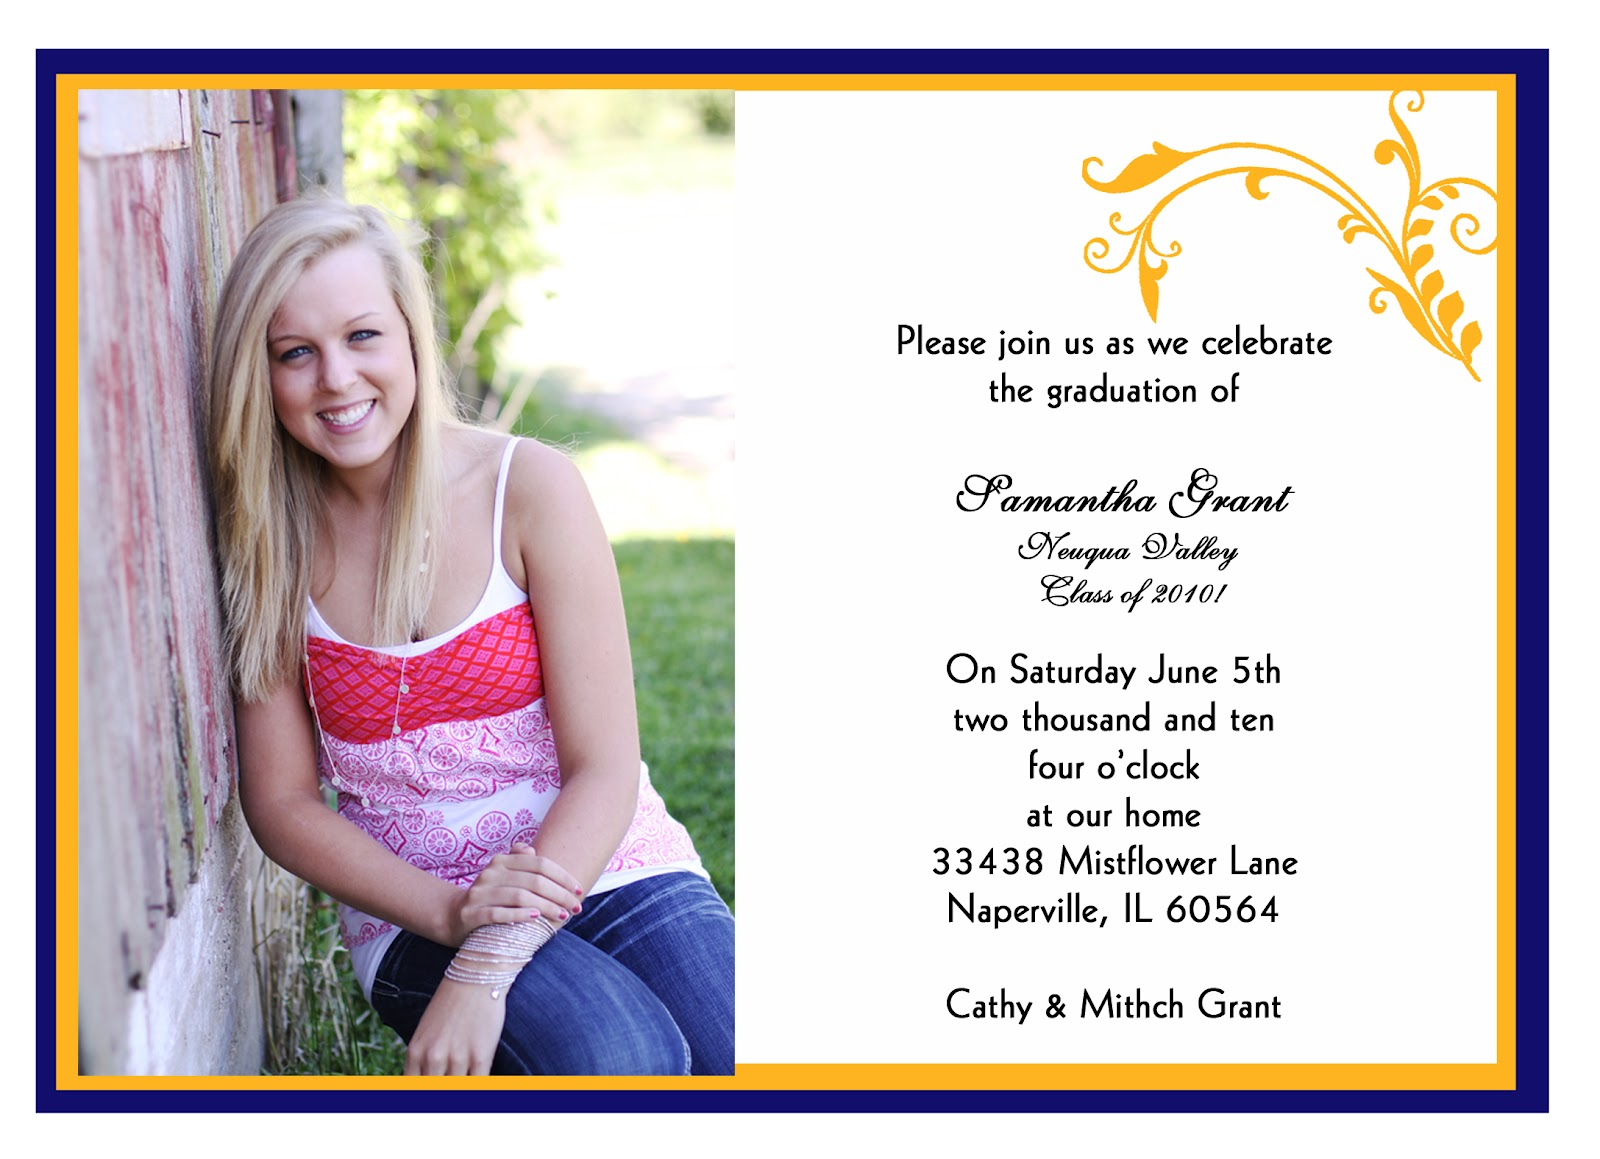 carol graham photography senior graduation announcements invitations